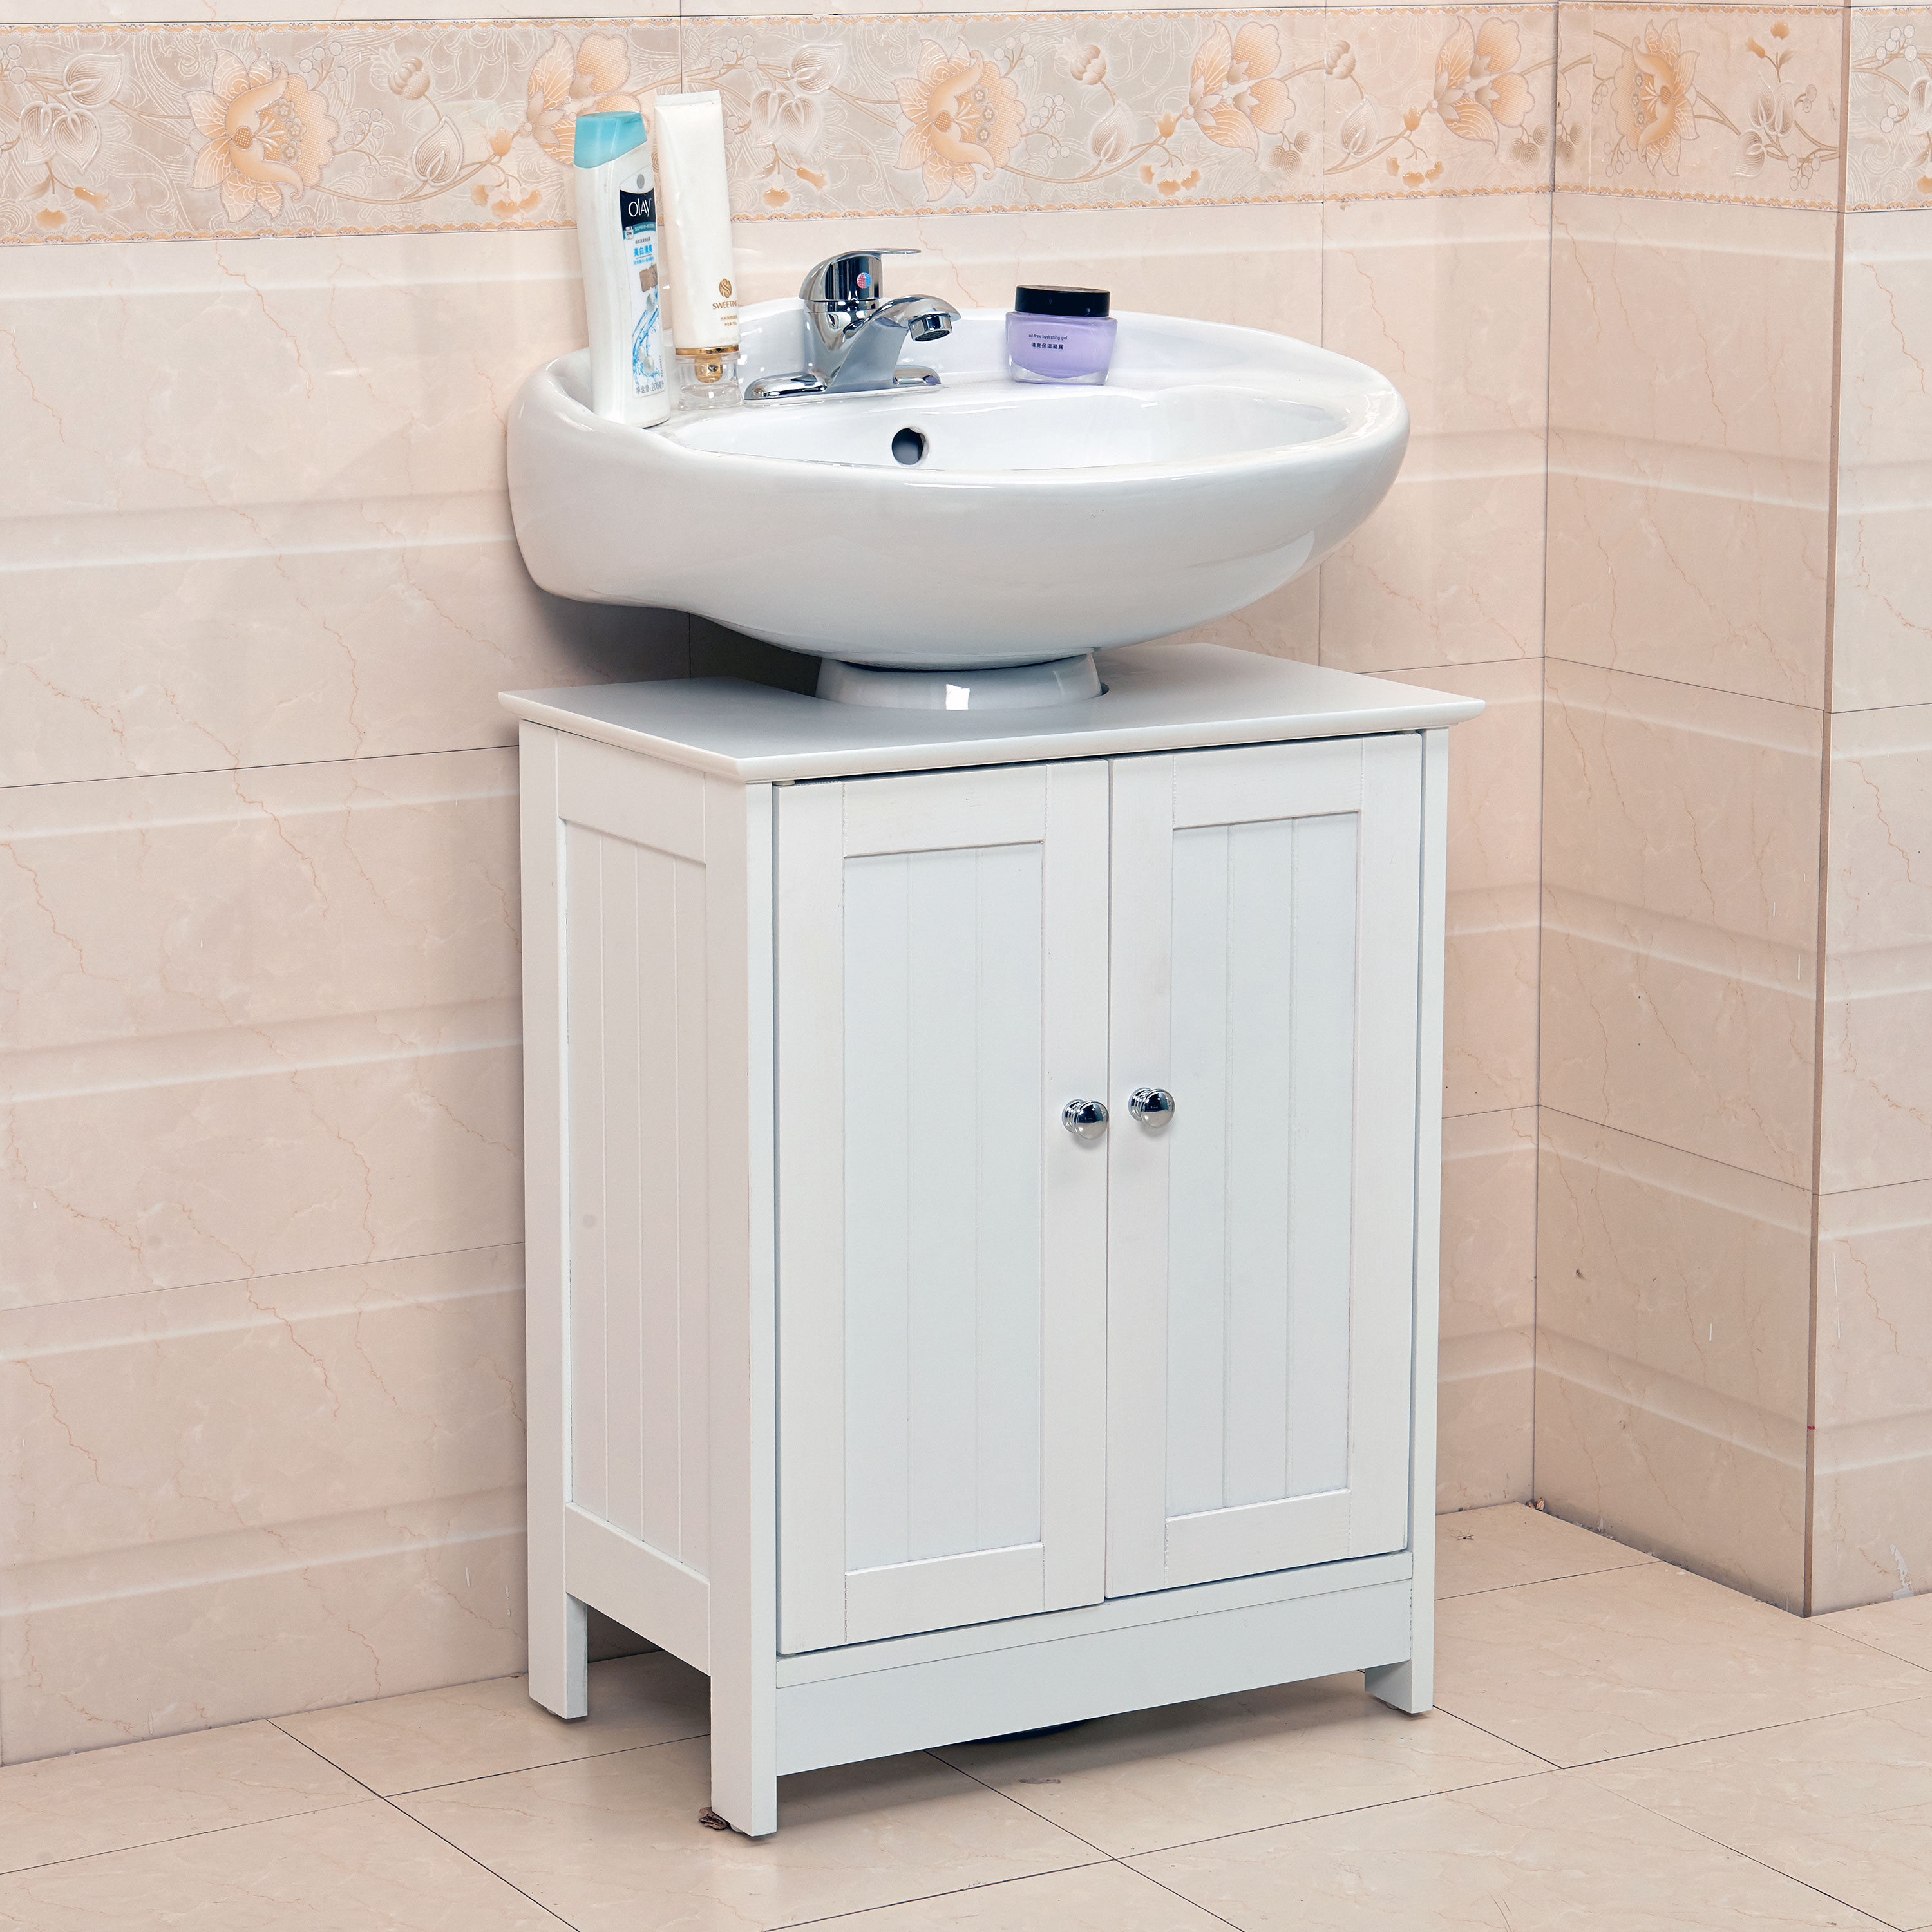 Details About Undersink Bathroom Cabinet Cupboard Vanity Unit Under Sink Basin Storage Wood N intended for proportions 3000 X 3000